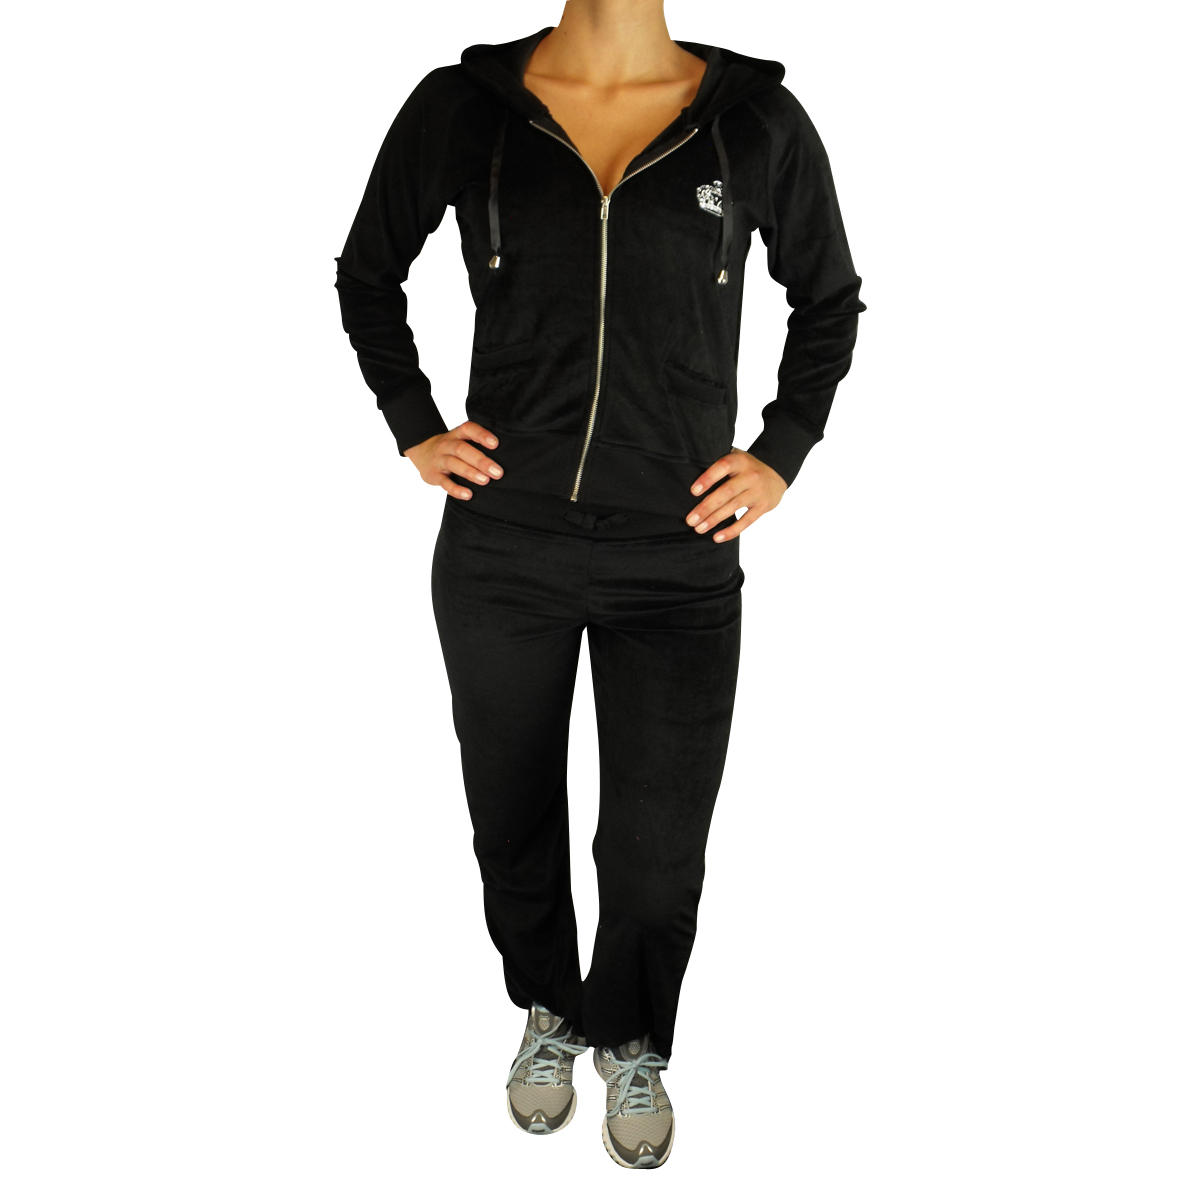 Shop for ladies jogging suits online at Target. Free shipping on purchases over $35 and save 5% every day with your Target REDcard.